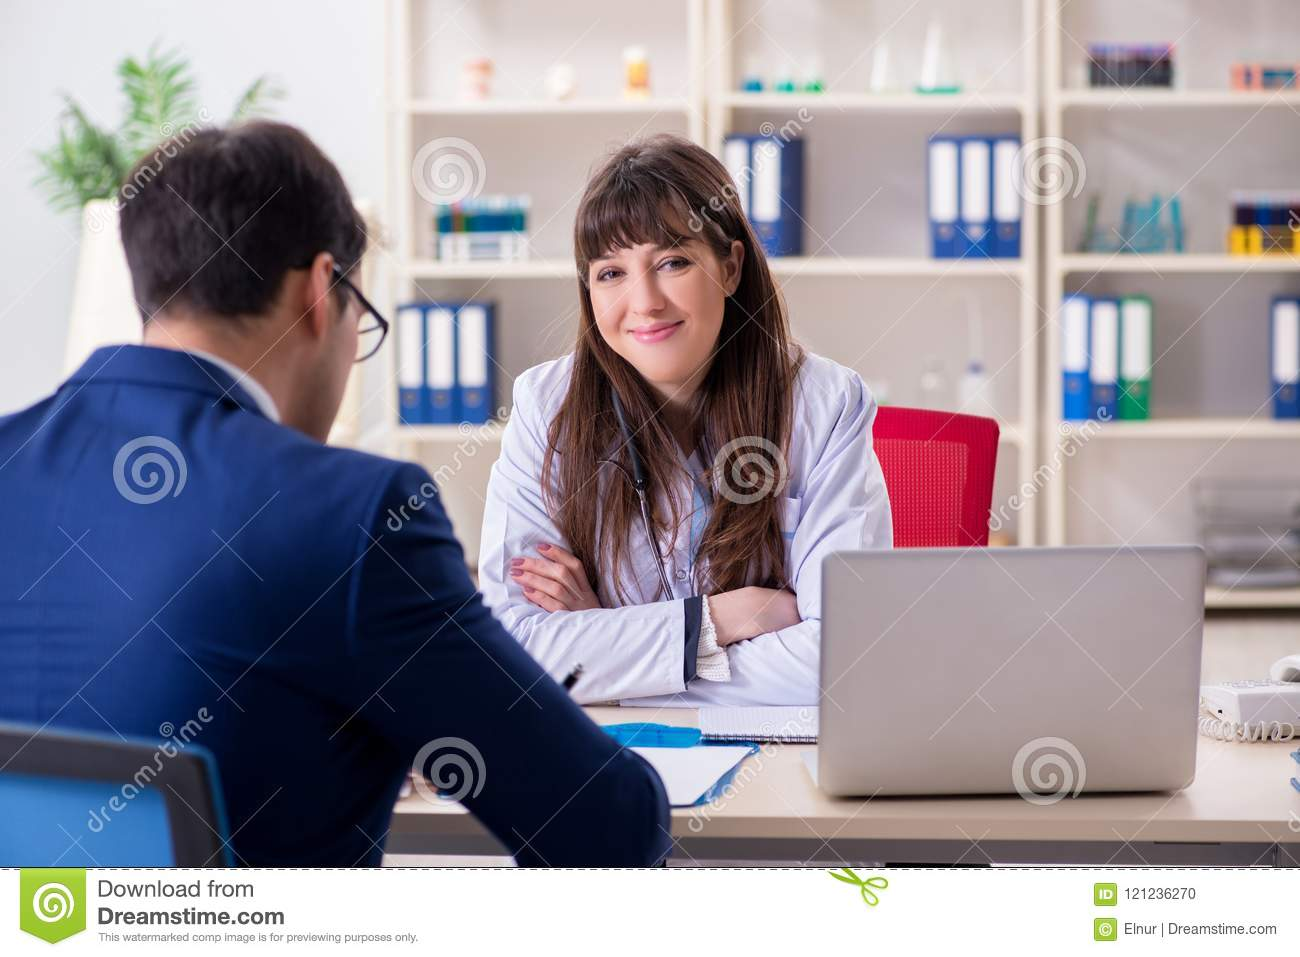 The businessman discussing health issues with doctor